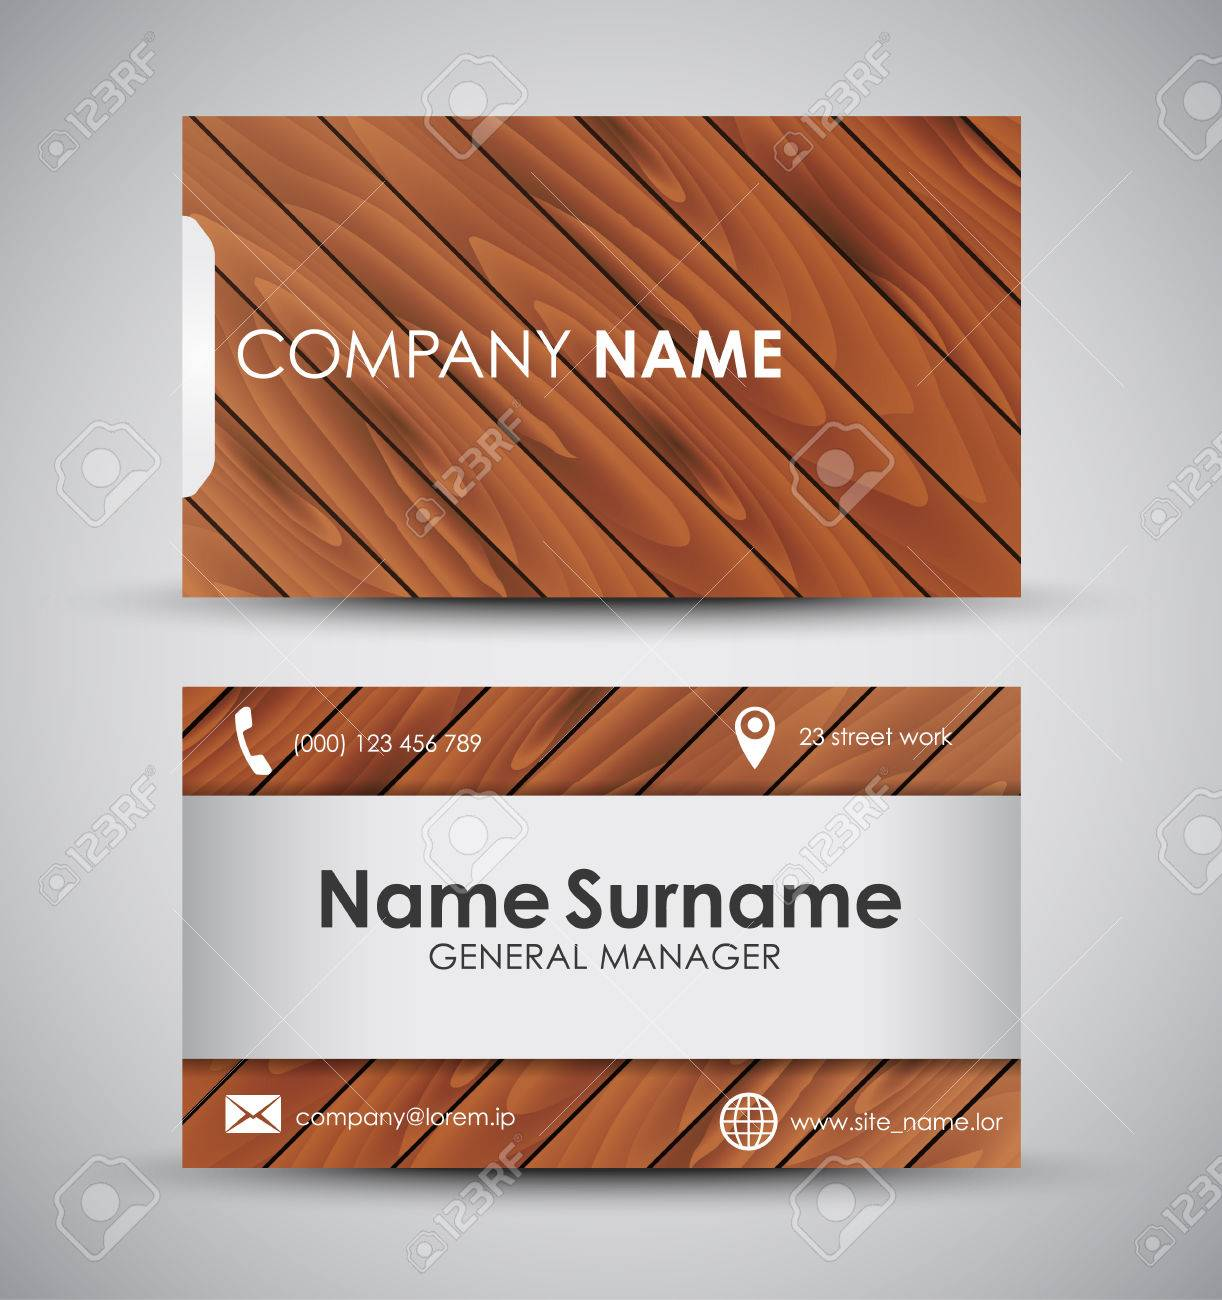 Business card template for the company or the individual design business card template for the company or the individual design with wooden diagonal texture and reheart Choice Image